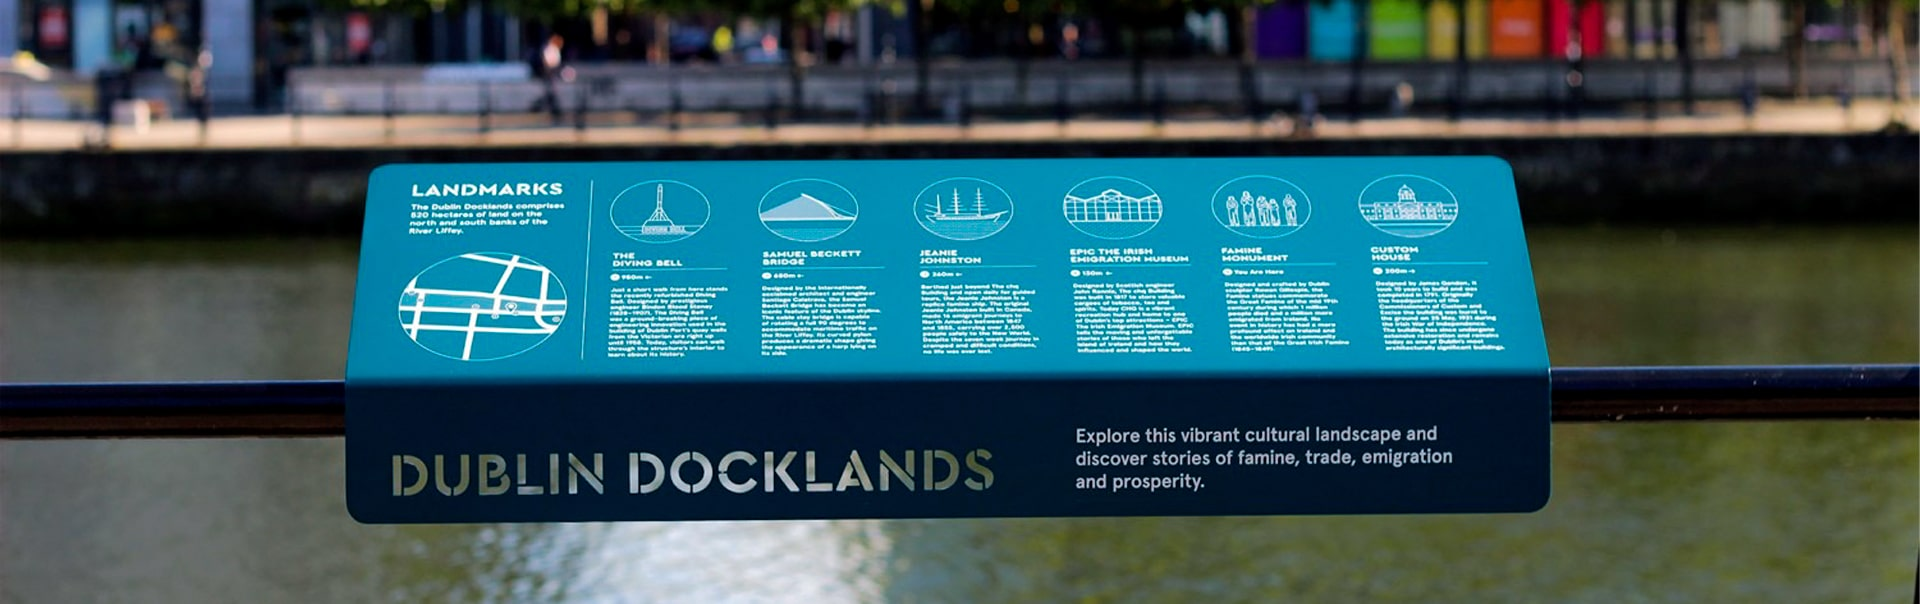 This award-winning Dublin Docklands wayfinding plaque is made by punching, painting and printing aluminium